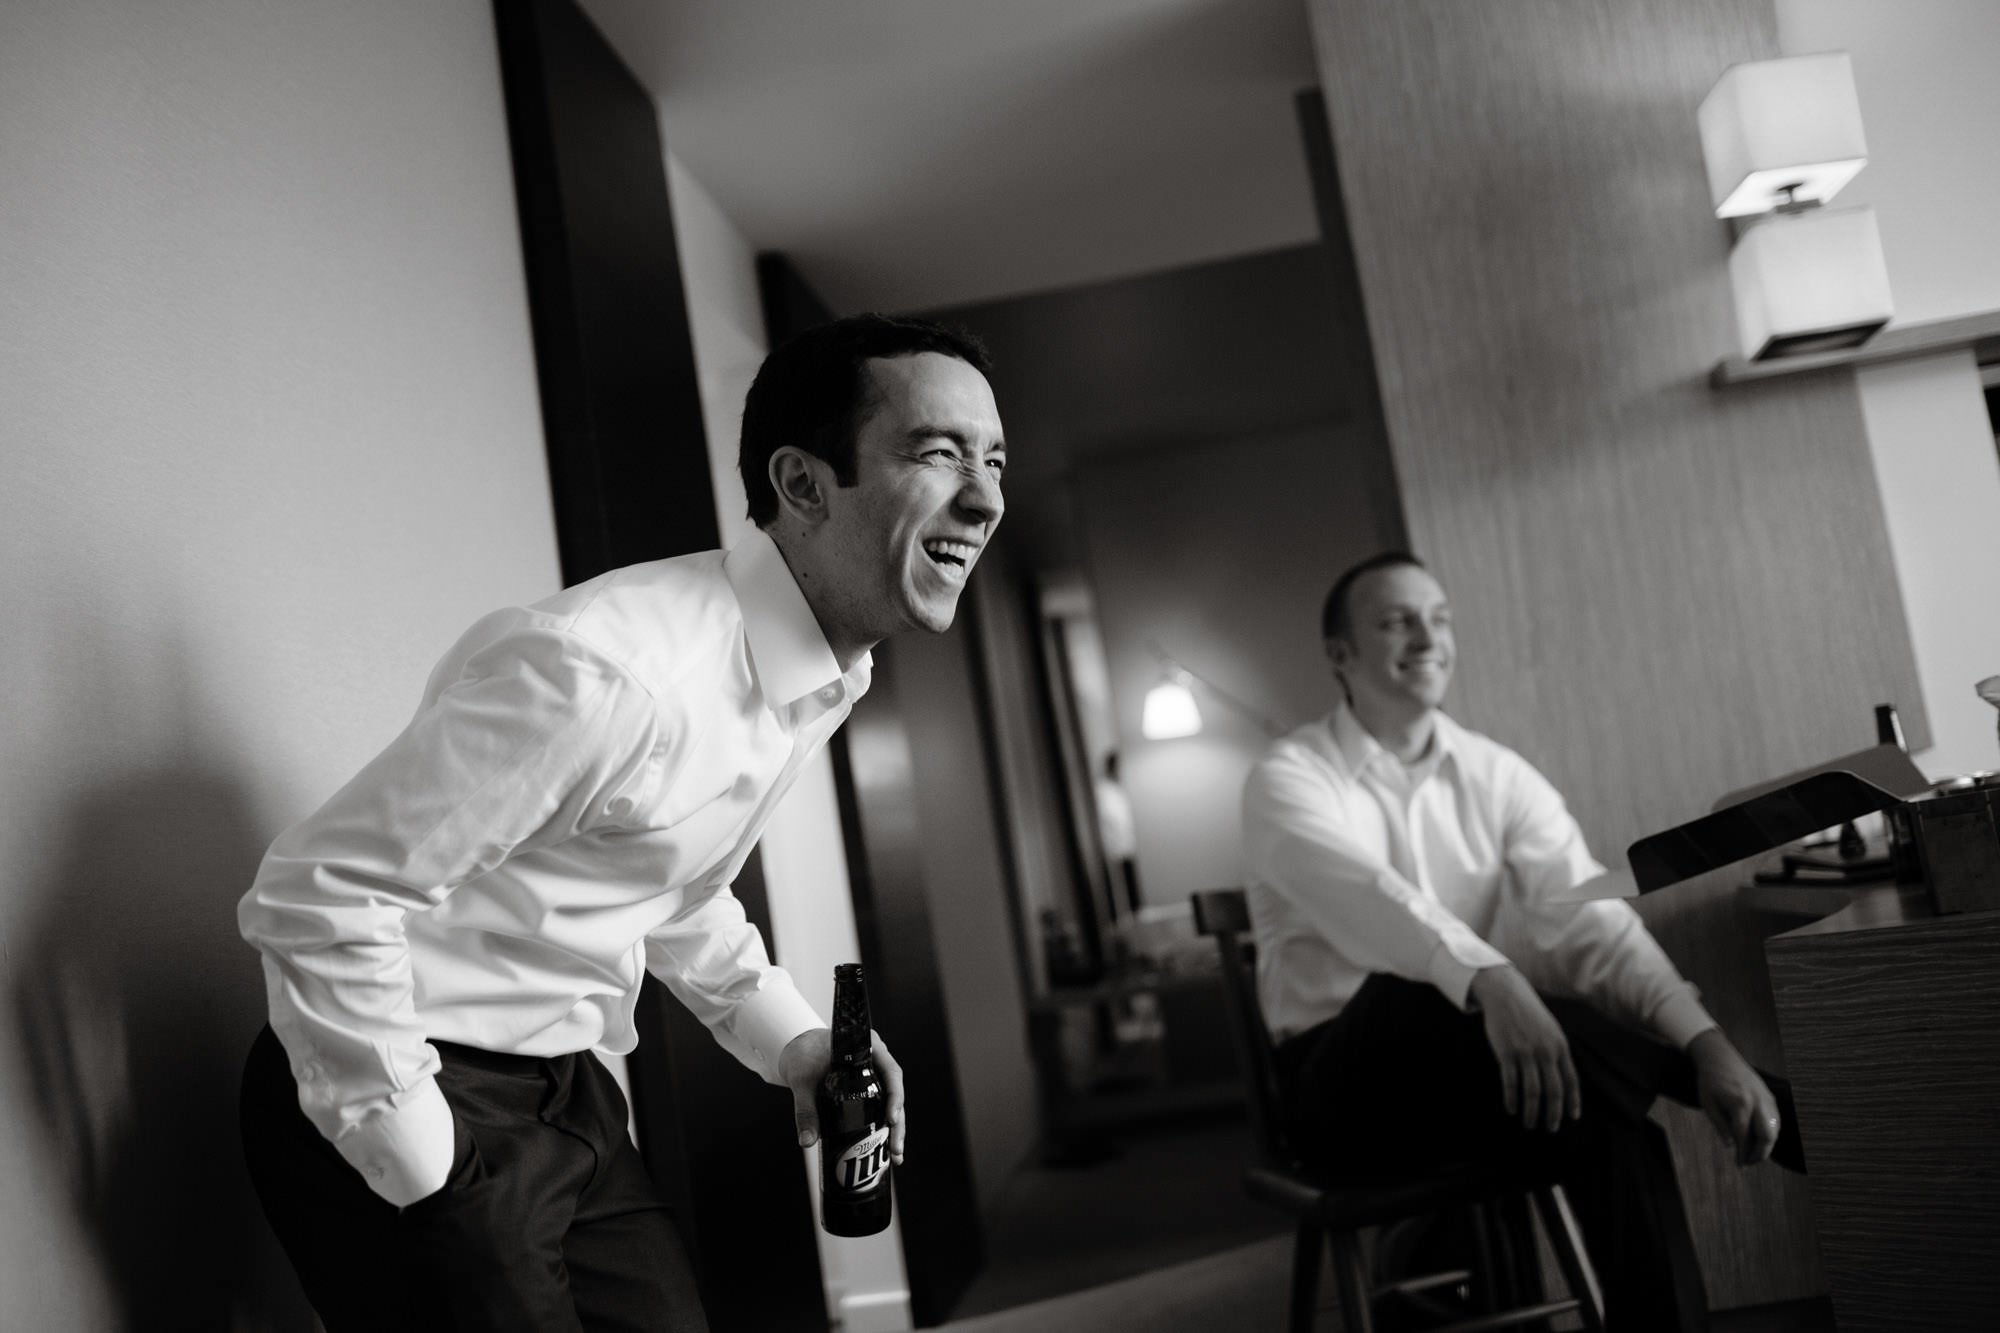 The groom laughs with his groomsmen while getting ready on his Park Hyatt Washington DC Wedding day.